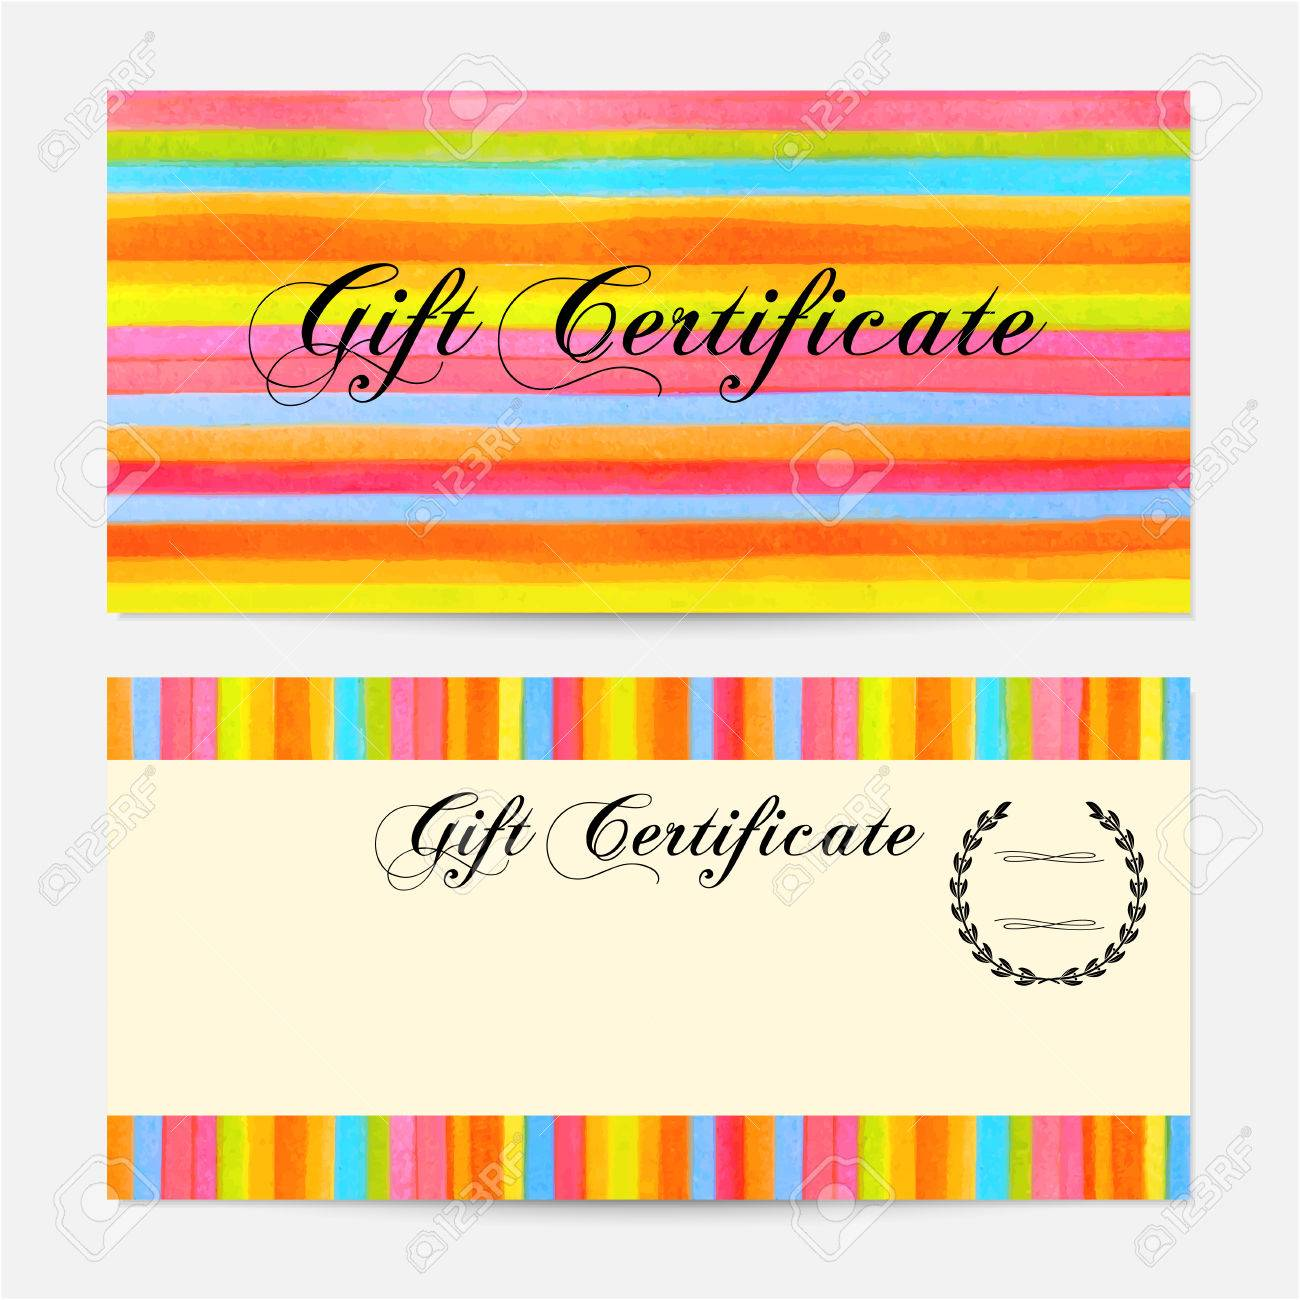 Gift certificate voucher coupon gift money bonus gift card gift certificate voucher coupon gift money bonus gift card template with colorful yadclub Gallery